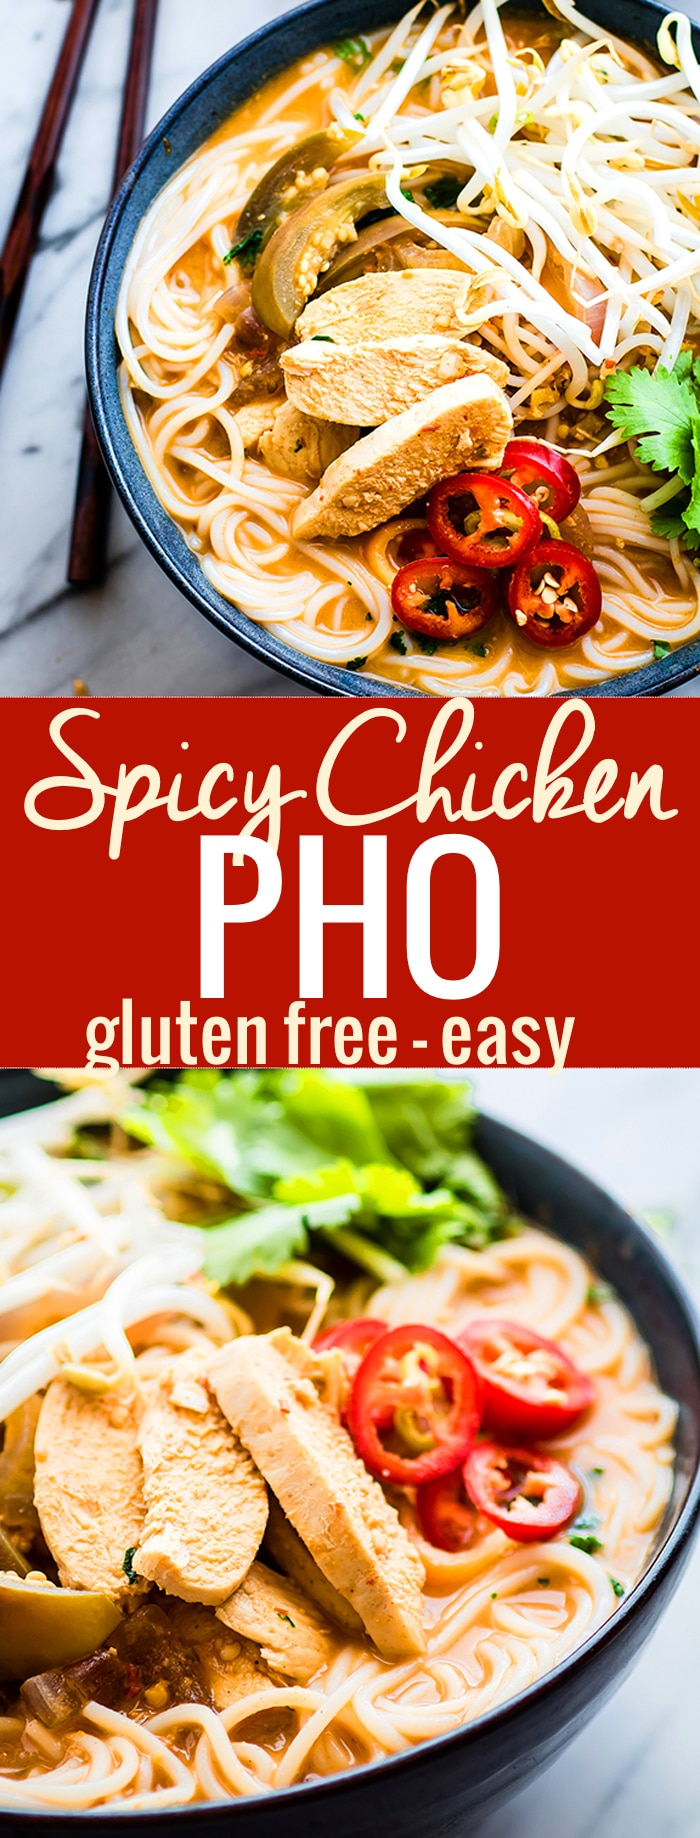 Chicken PHO made with a blended spicy broth! This gluten free Almond chicken PHO is easy to make, dairy free, healthy, and delicious. A blended chili pepper almond sauce is mixed in with the PHO broth to make this soup extra flavorful! A homemade PHO recipe that warms the body and soul. @vitamix @cottercrunch